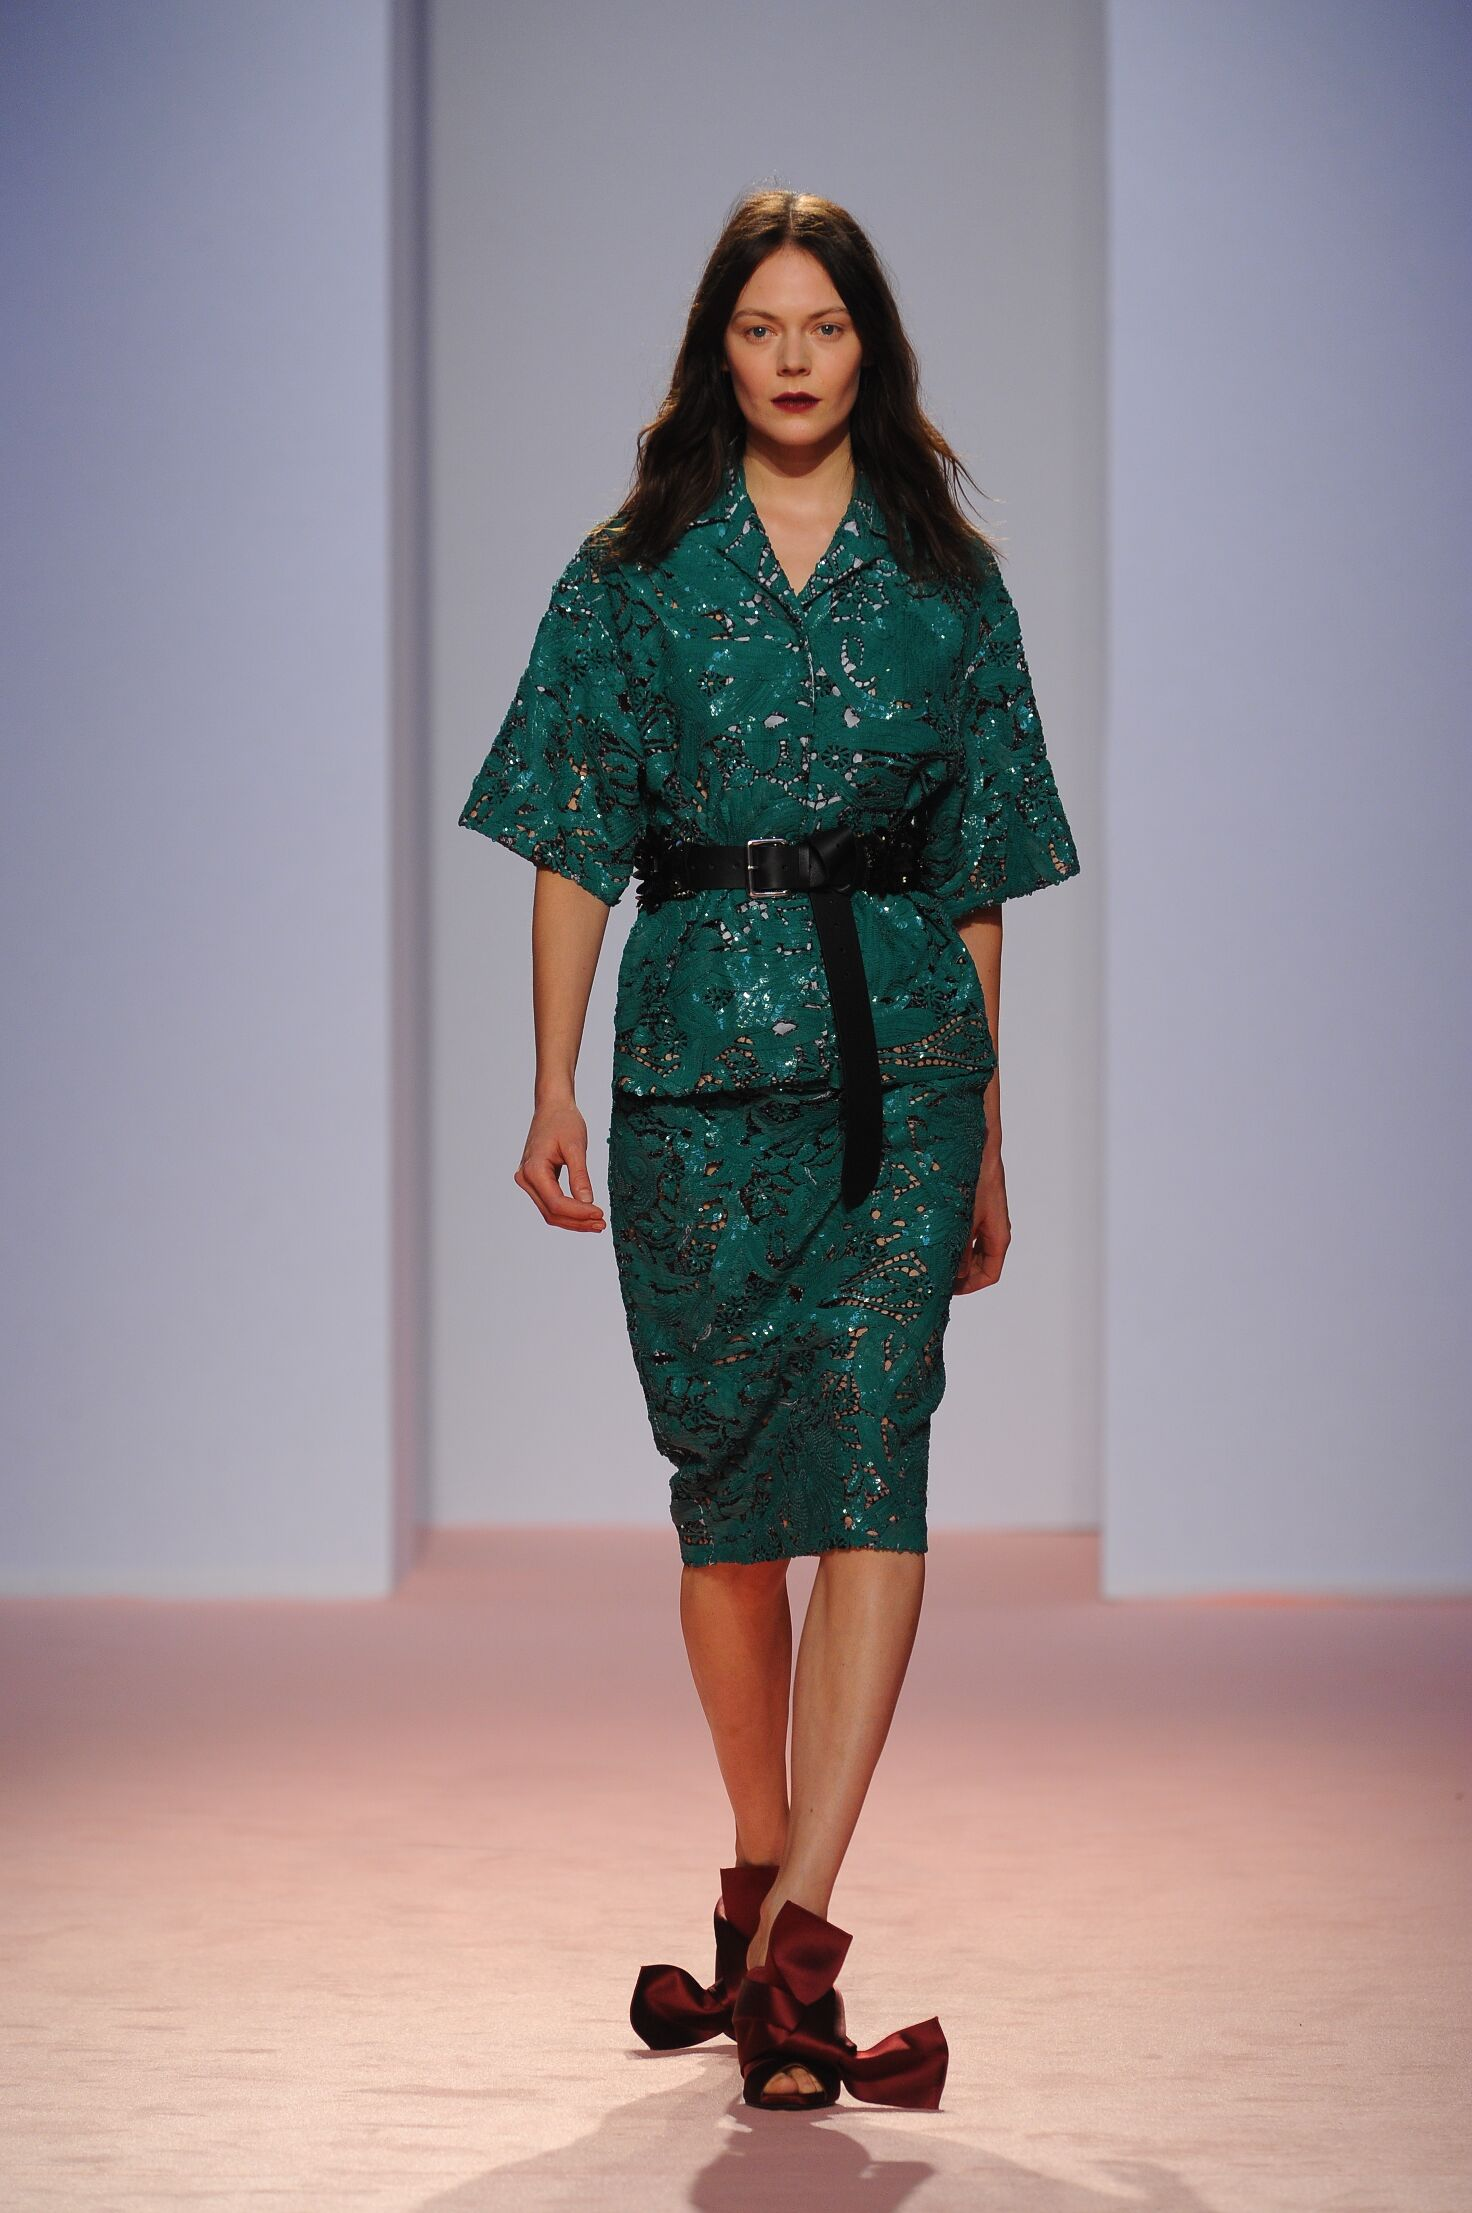 Spring 2015 Woman Fashion Show N°21